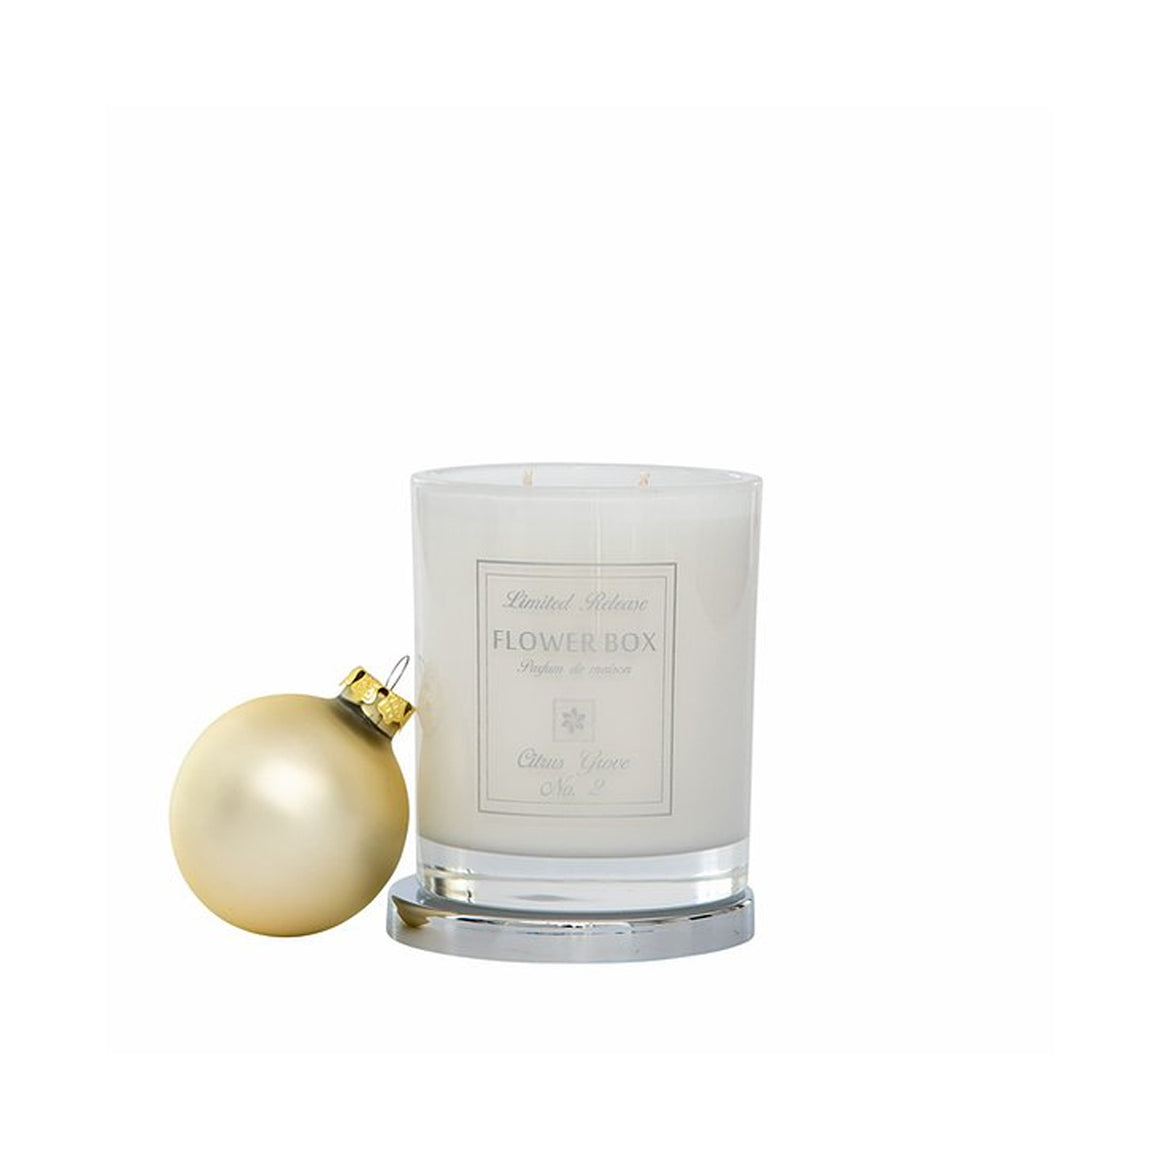 Citrus Grove No2 Candle